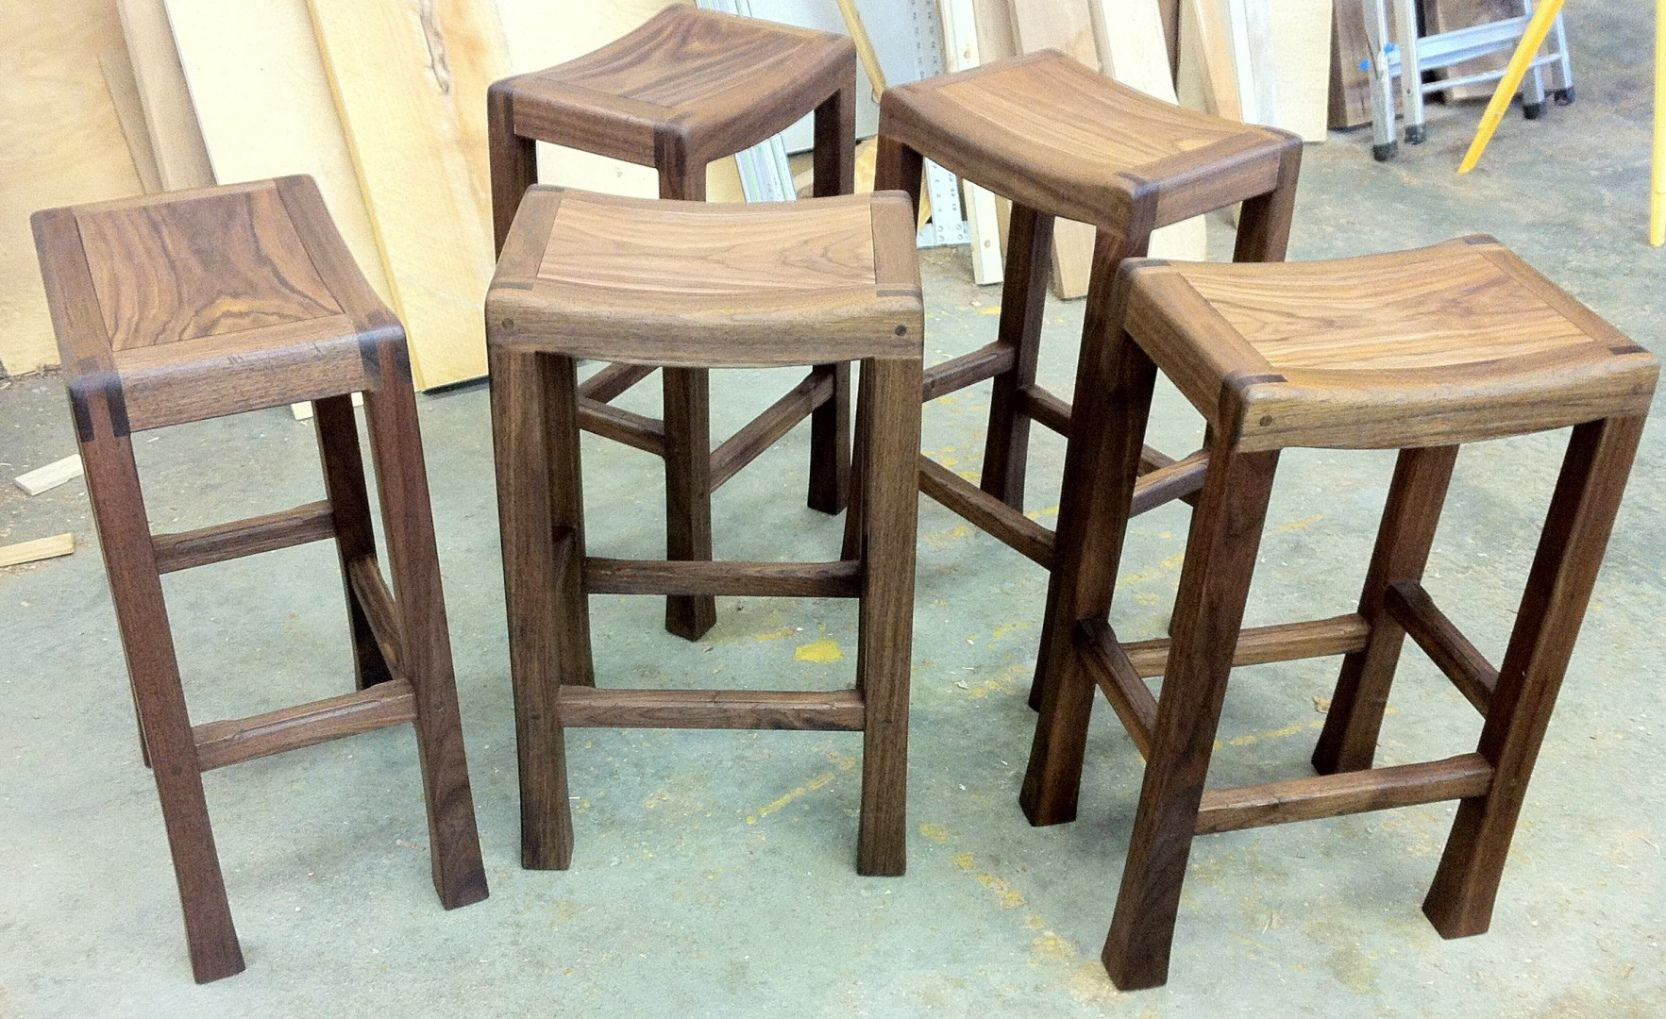 2019 24 wood bar stools modern classic furniture check more at